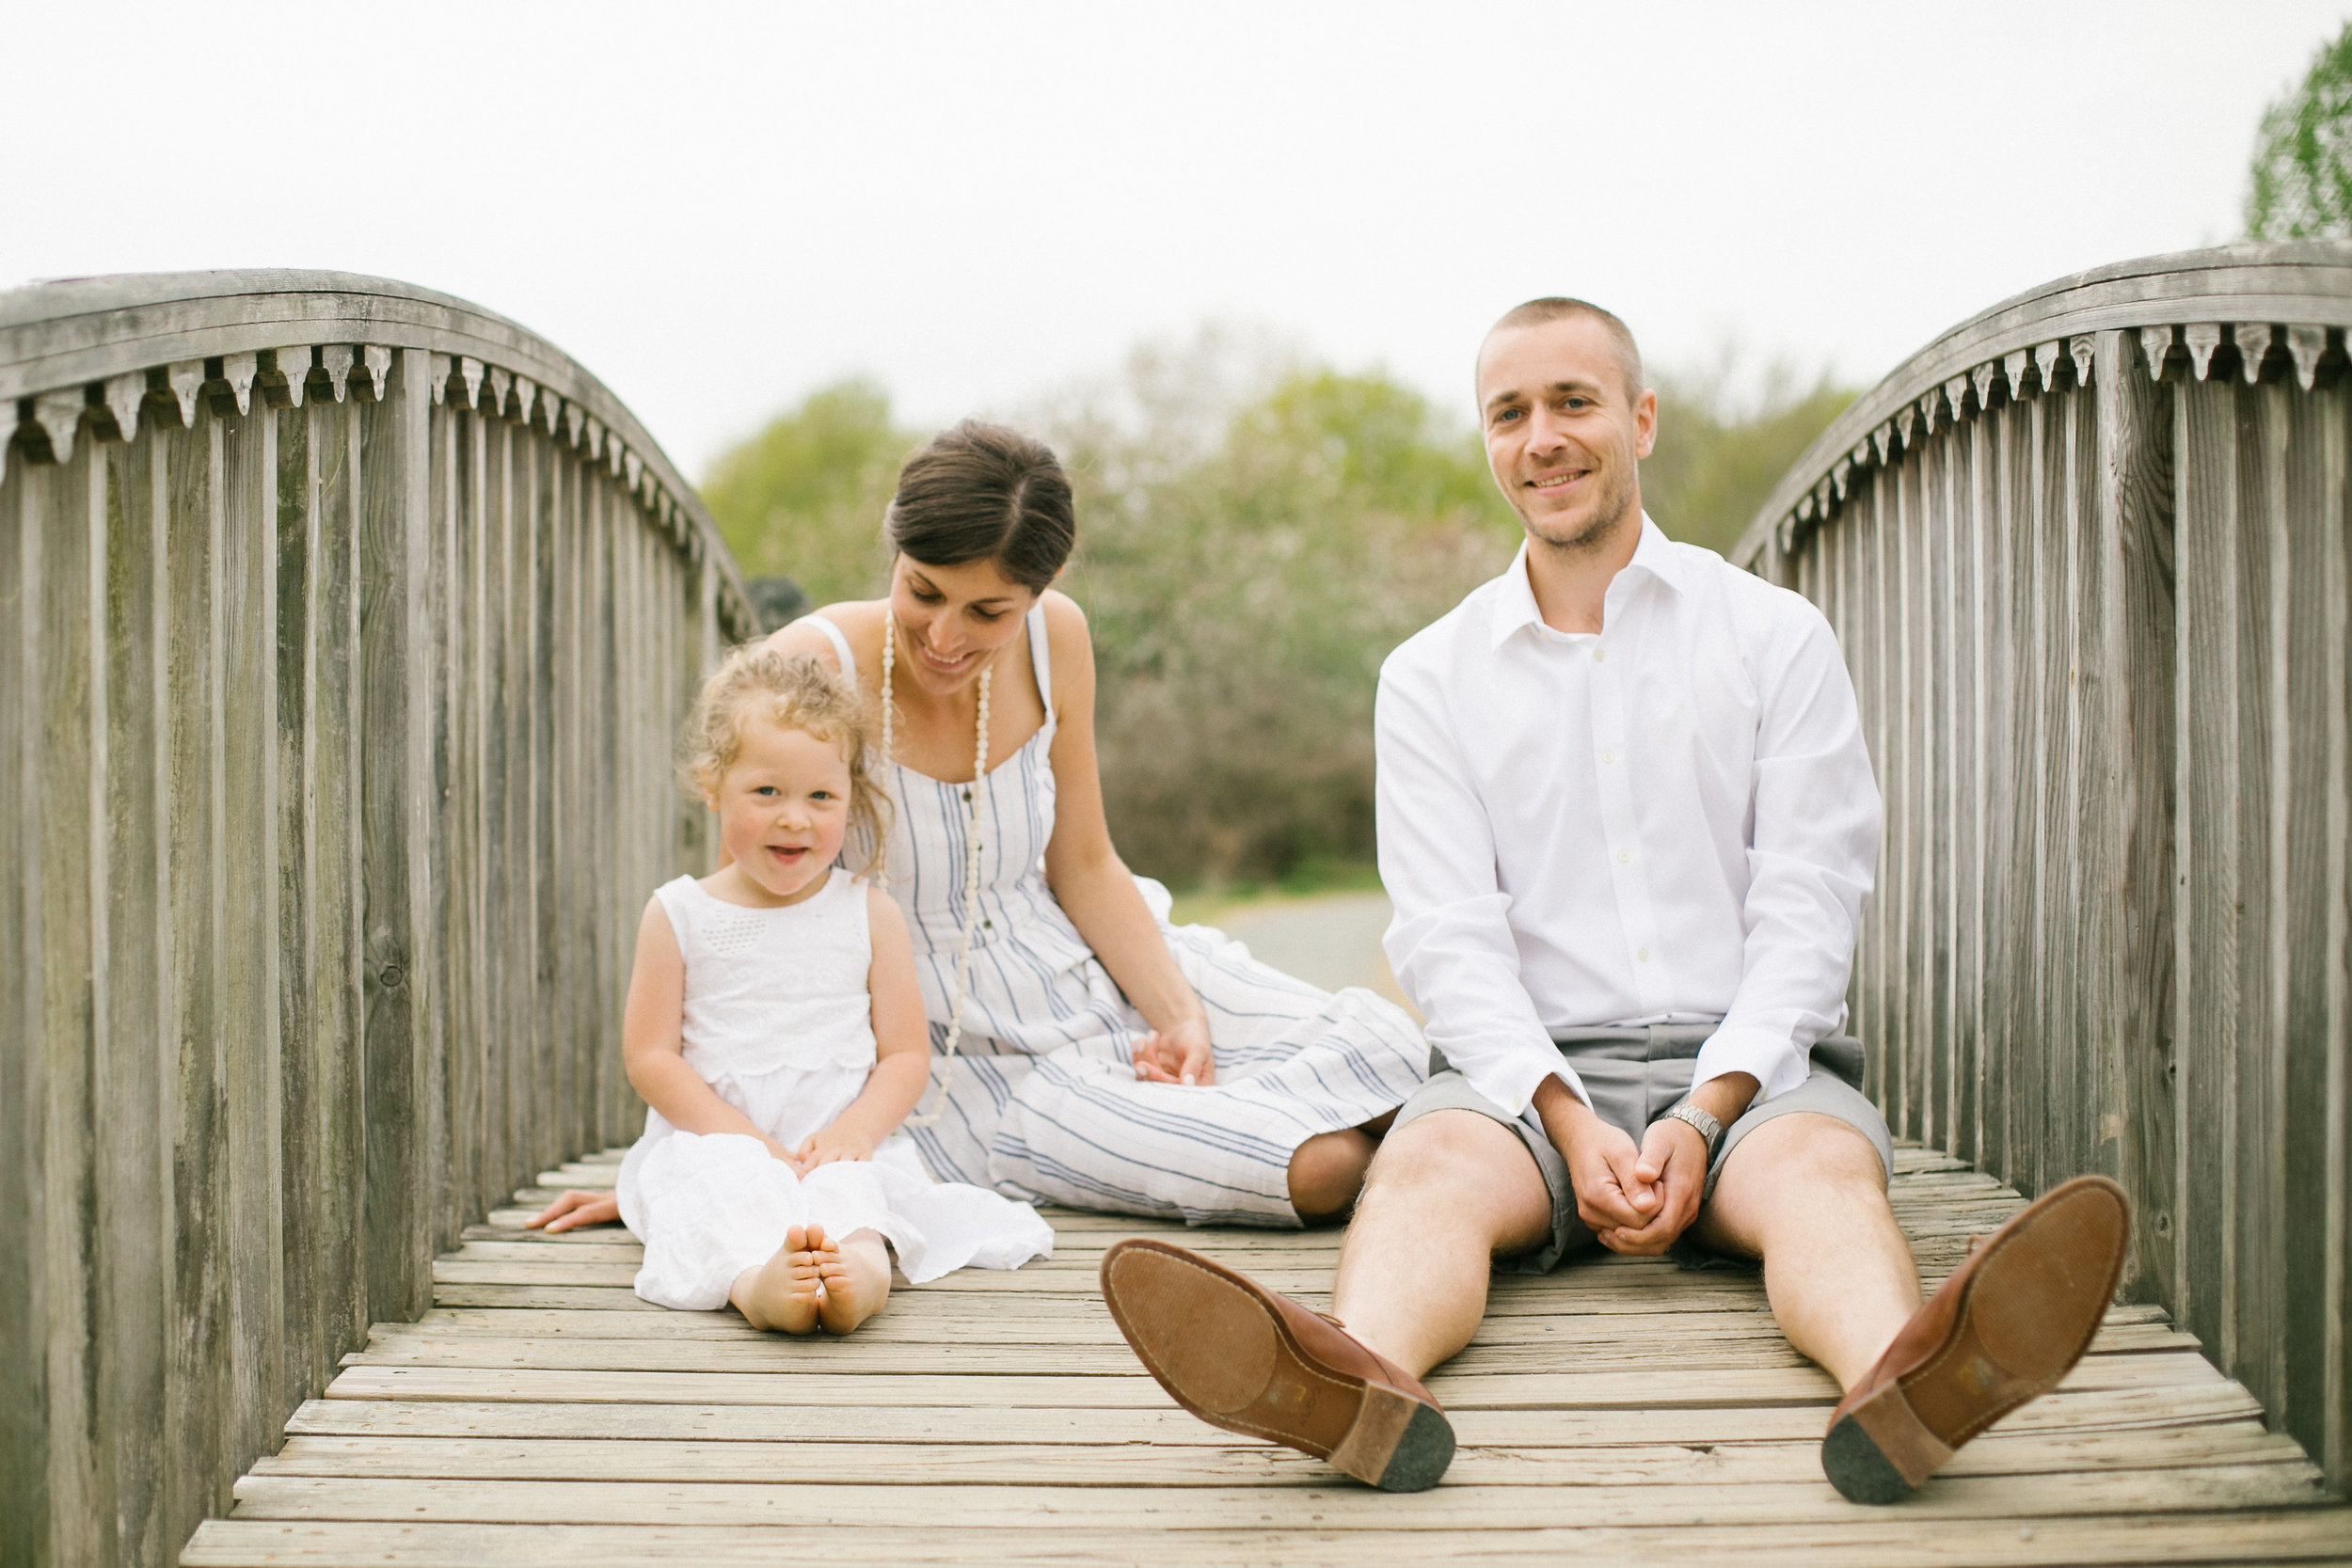 camden_park_family_session